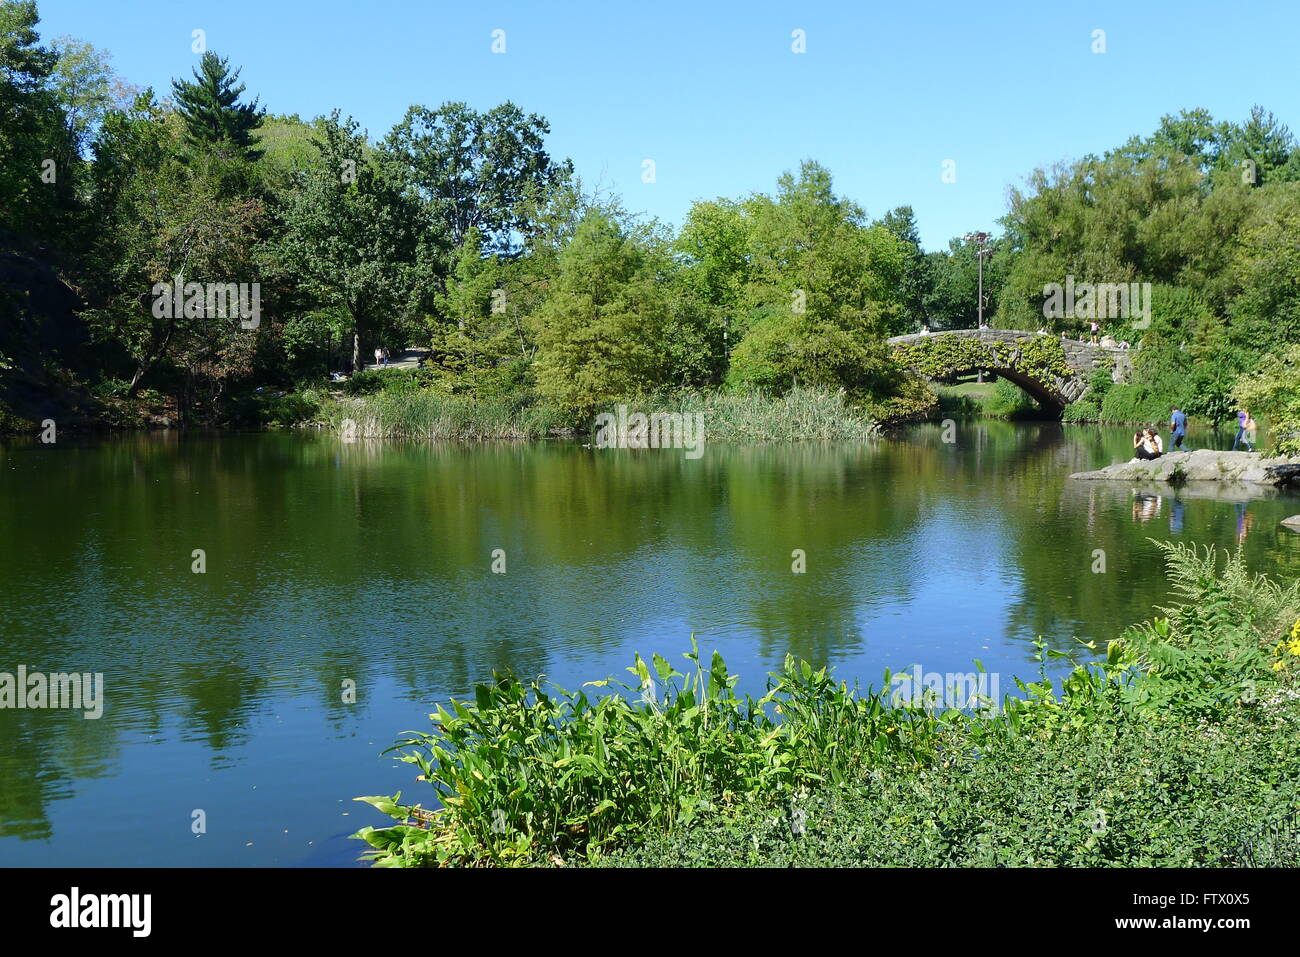 The Pond and Gapstow Bridge in Central Park - Stock Image